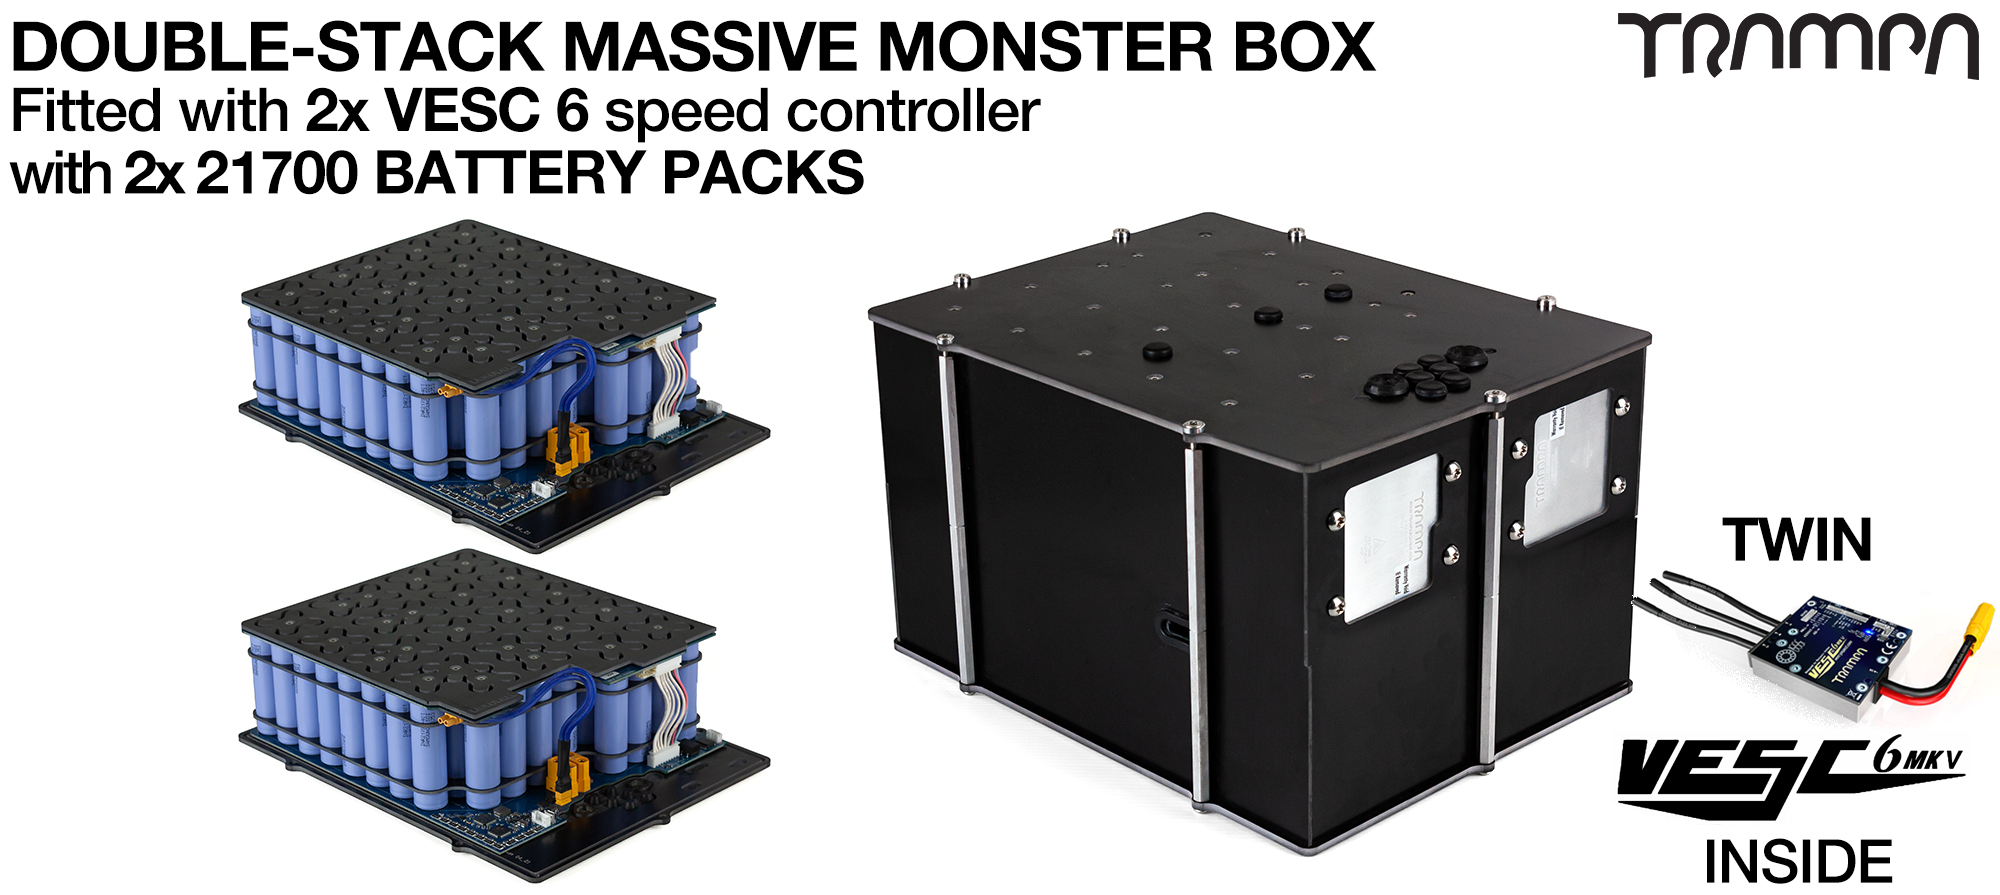 2WD DOUBLE STACK MASSIVE MONSTER Box with 21700 PCB Pack with 2x VESC 6 & 168x 21700 cells 12s7p = 70Ah - Specifically made to work in conjunction with TRAMPA's Electric Decks but can be adapted to fit anything - UK Customers only